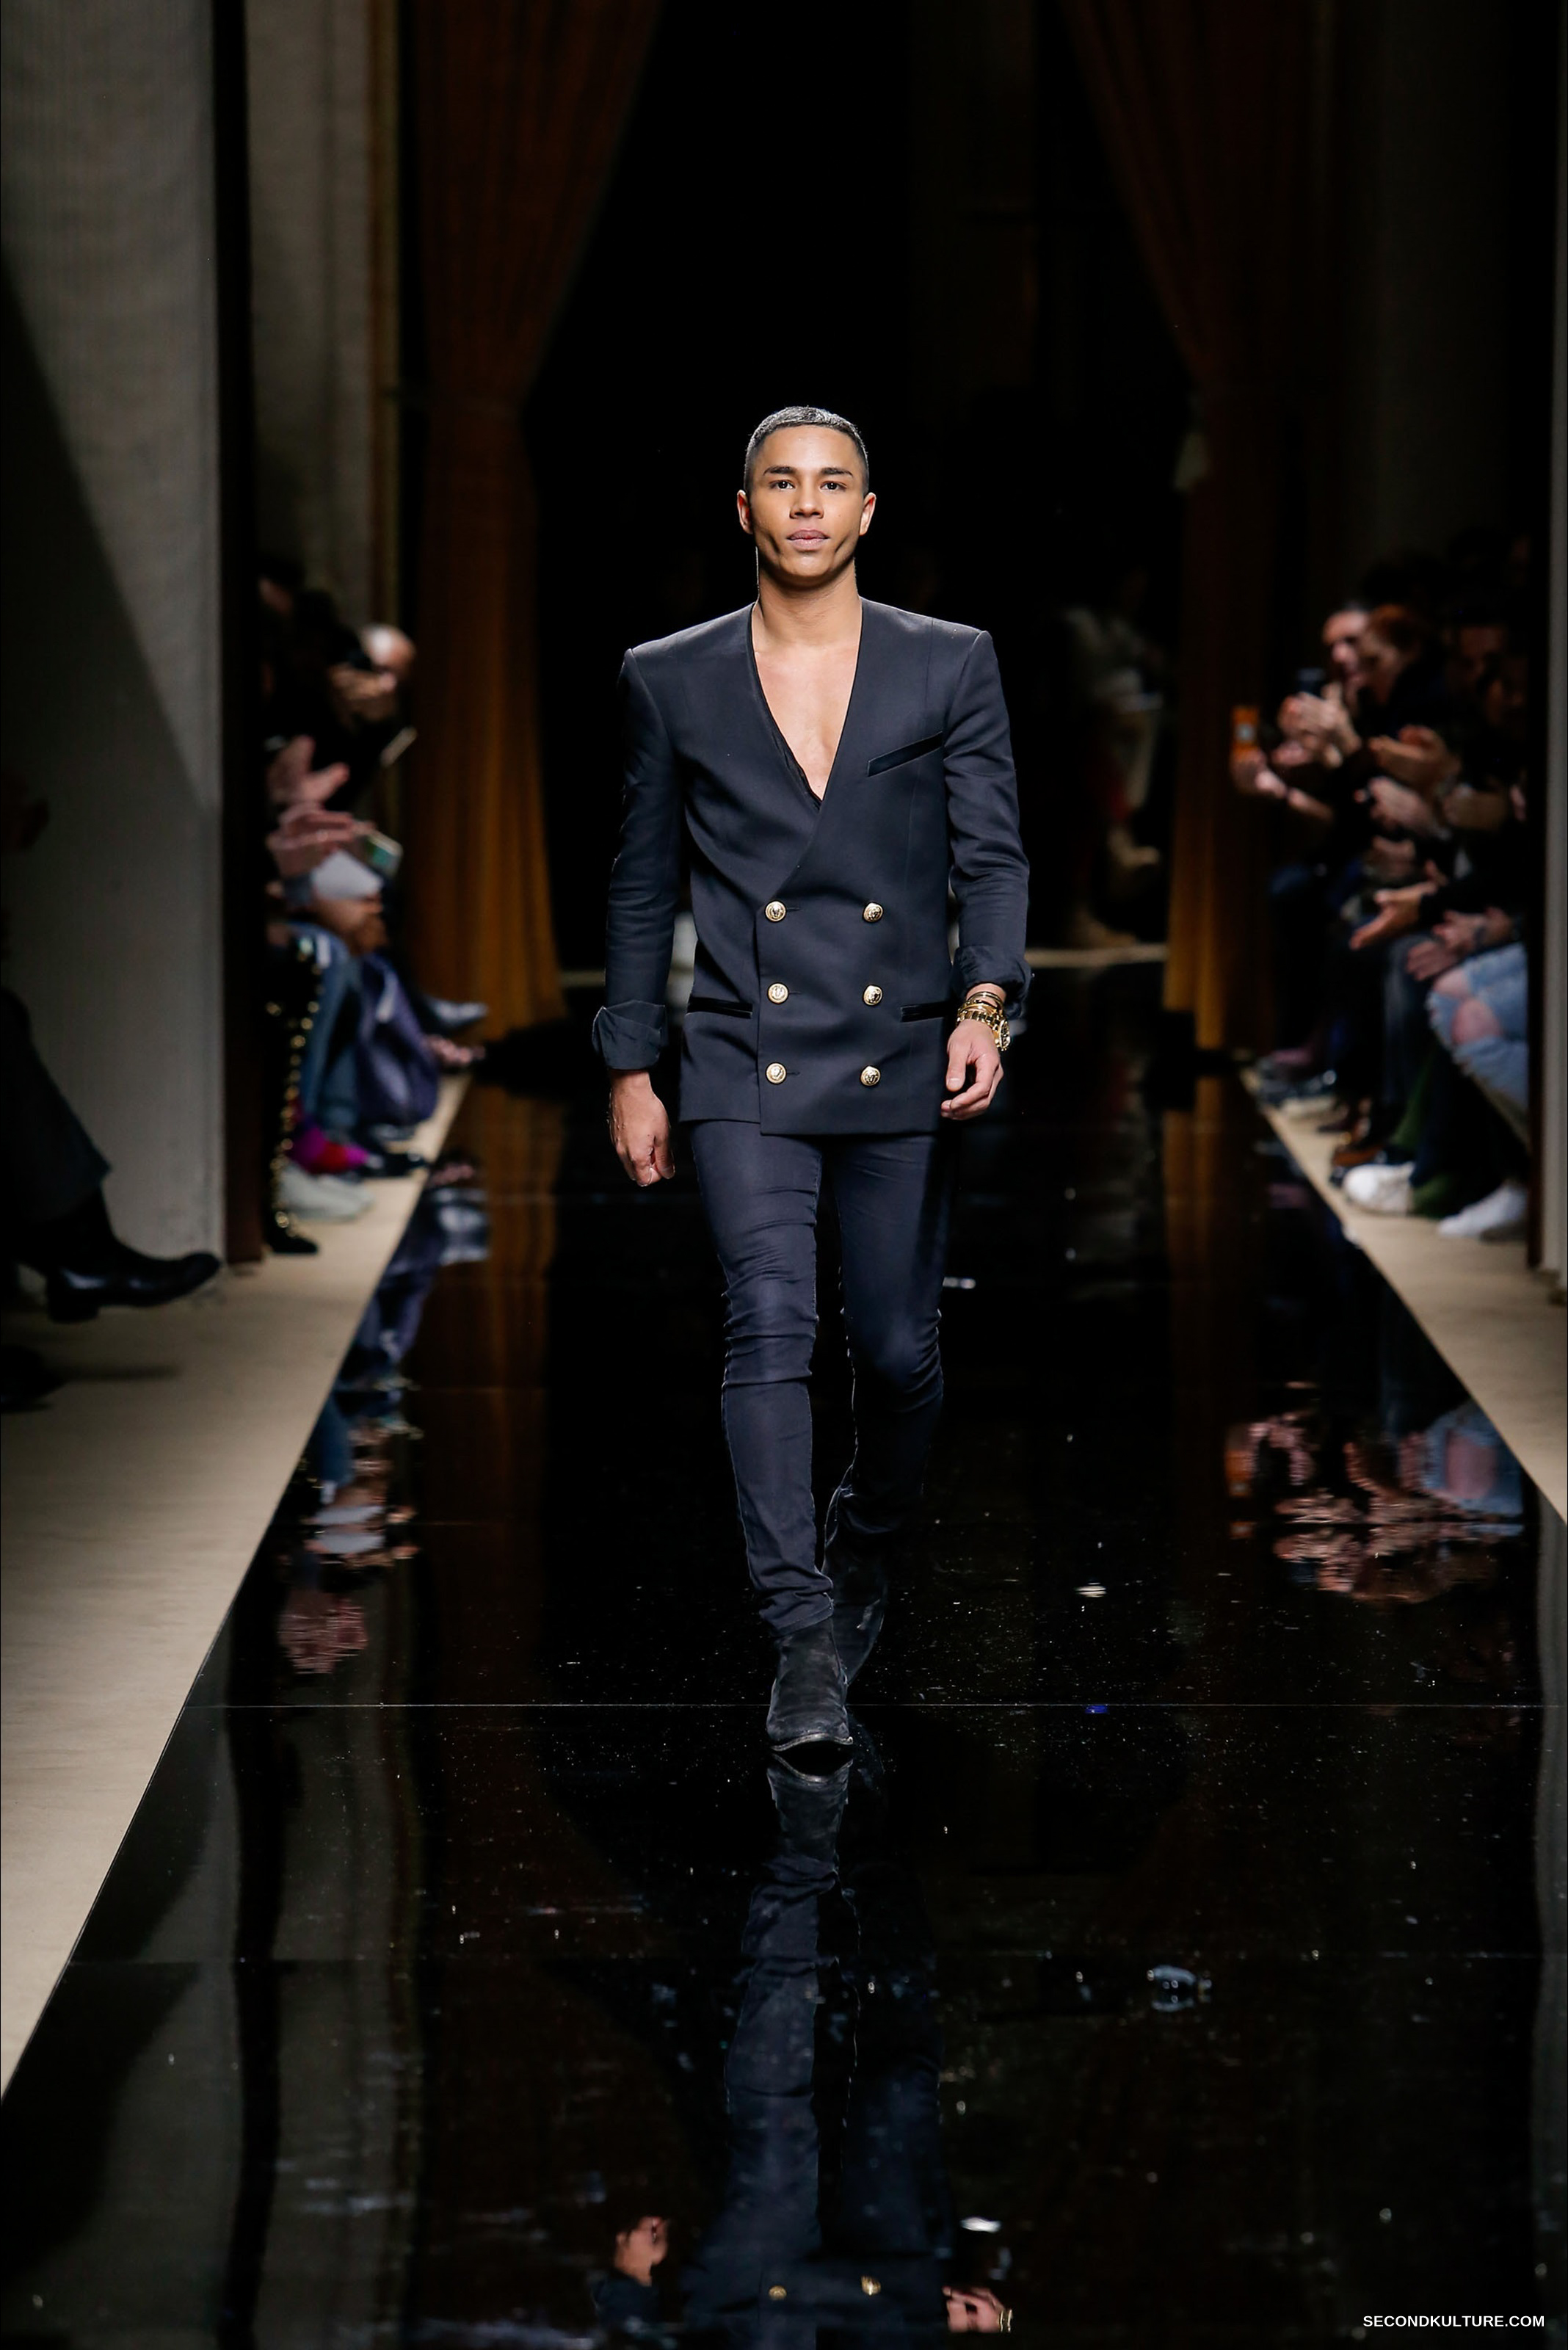 Olivier Rousteing at the Balmain Fall Winter 2016 Menswear fashion show finale